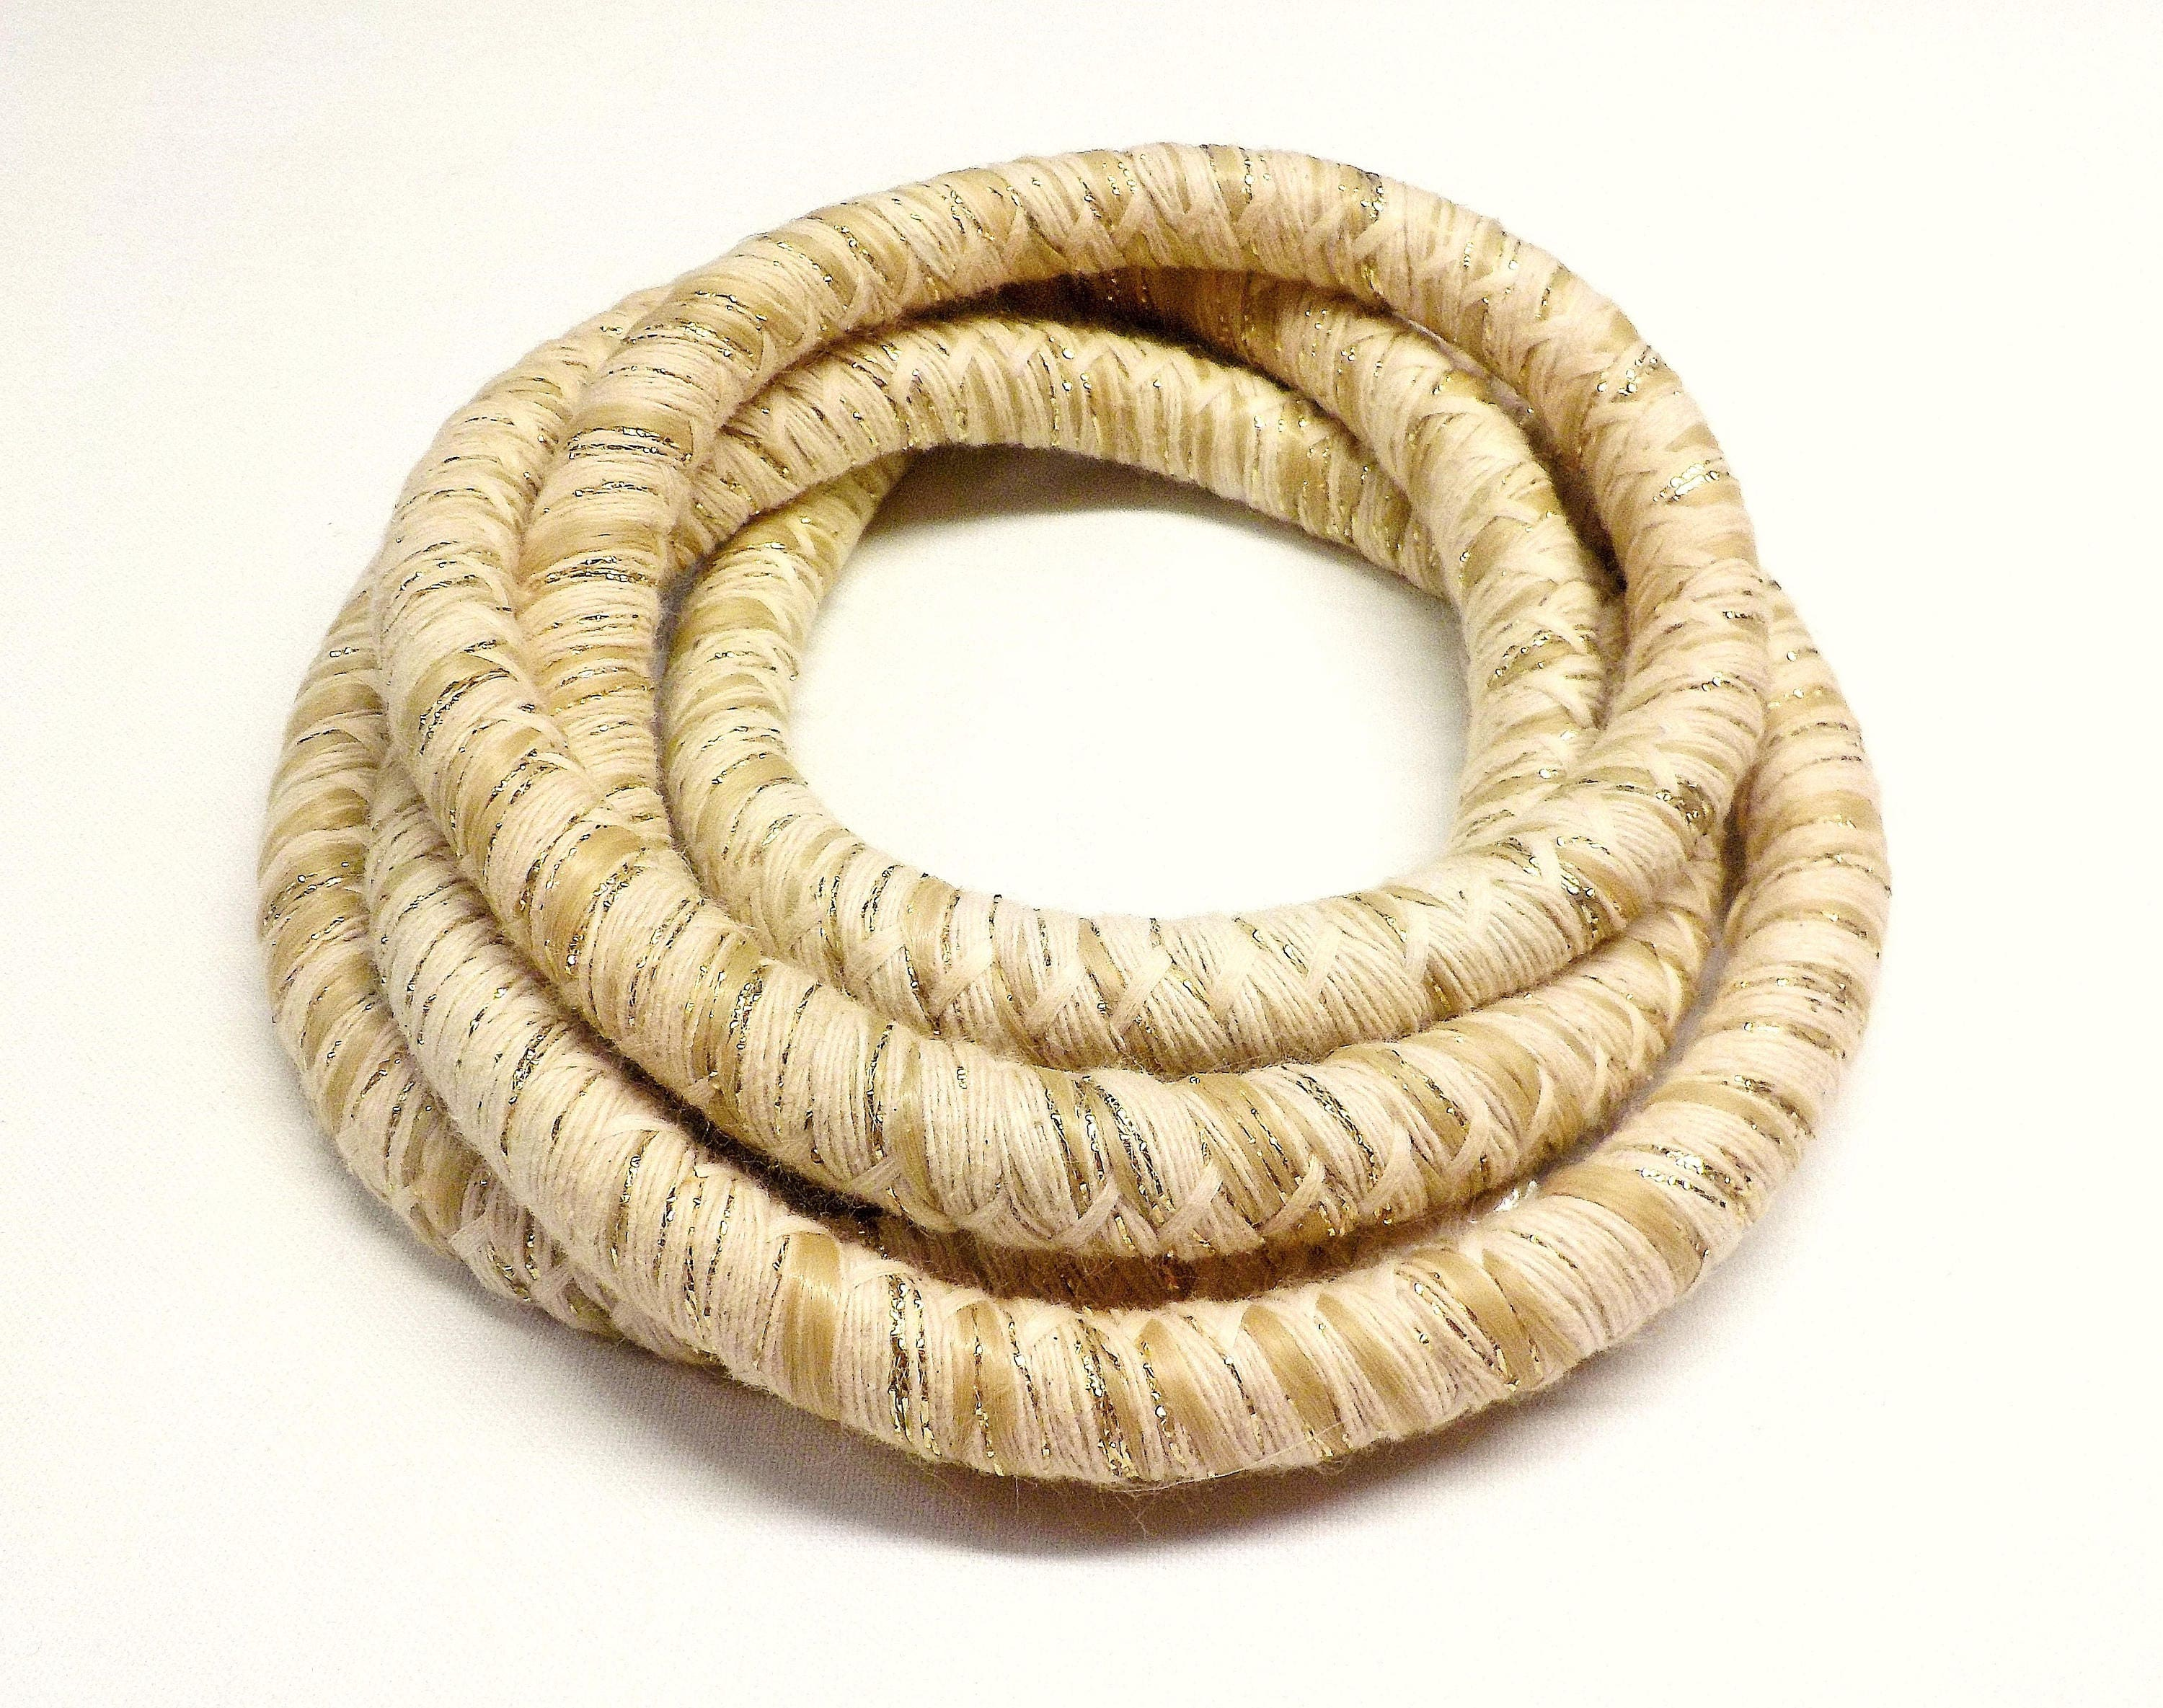 Making Soap On A Rope With Ivory With Kids